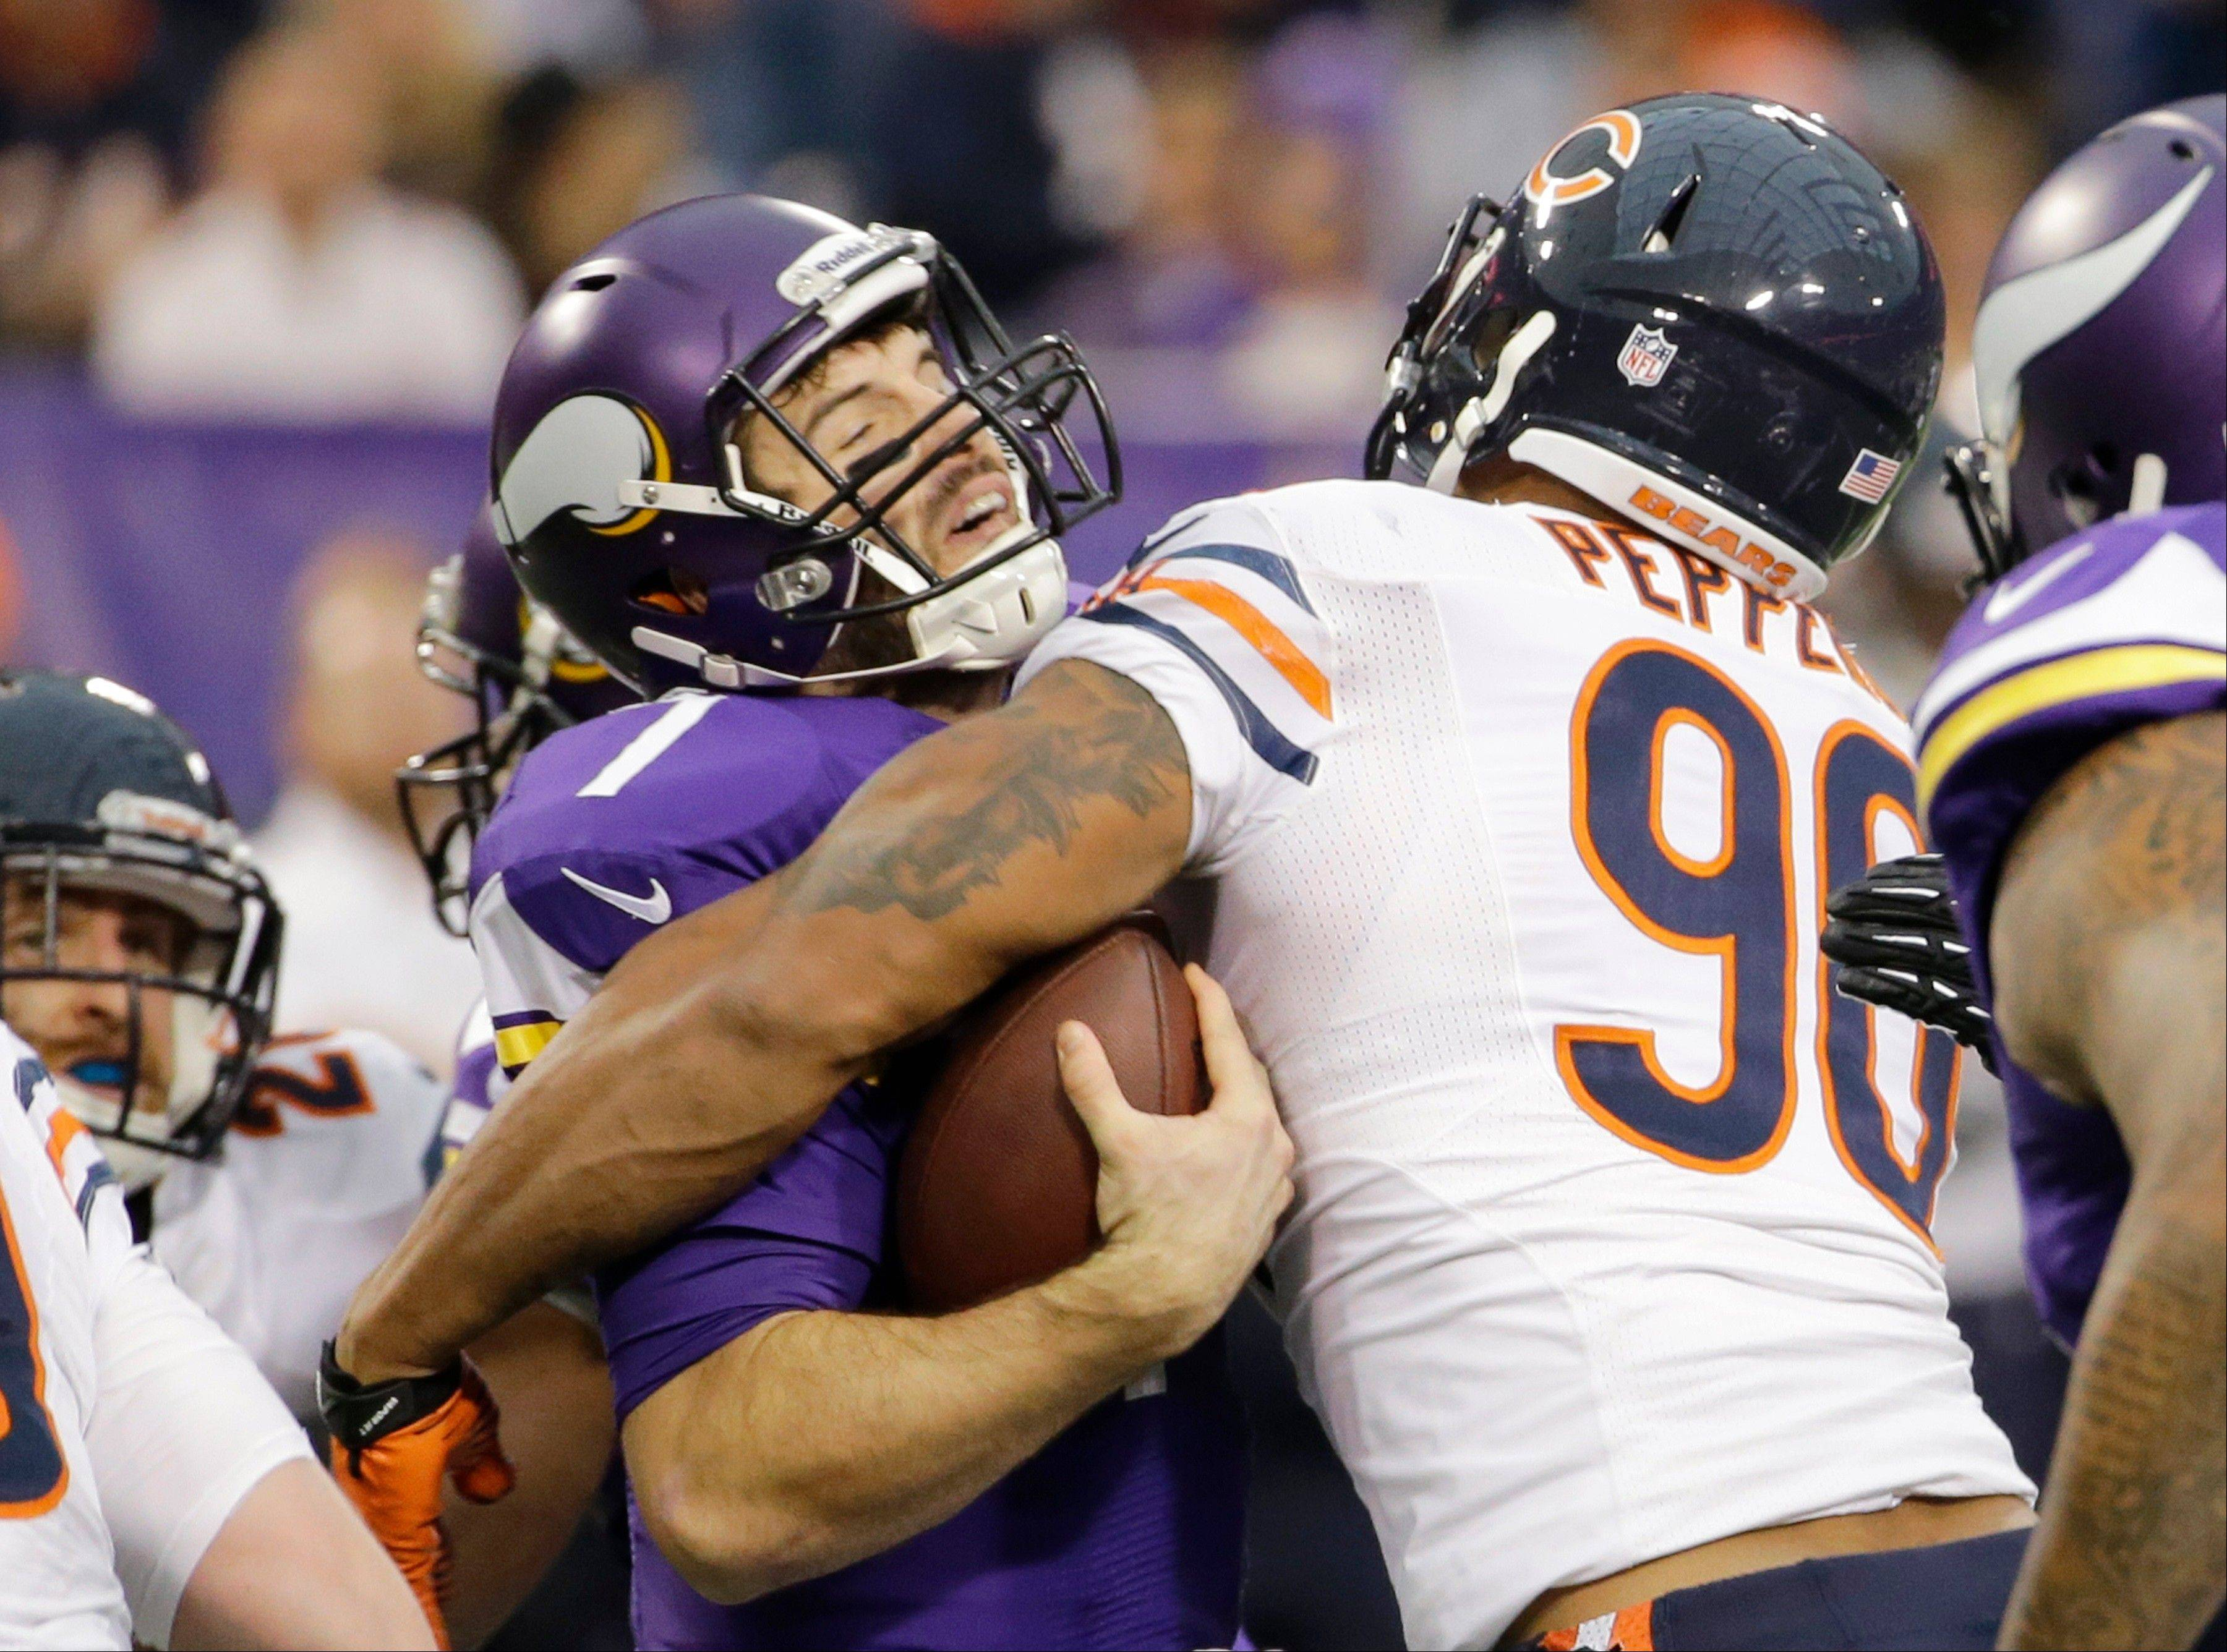 Minnesota Vikings quarterback Christian Ponder, left, is sacked by Chicago Bears defensive end Julius Peppers during the first half.